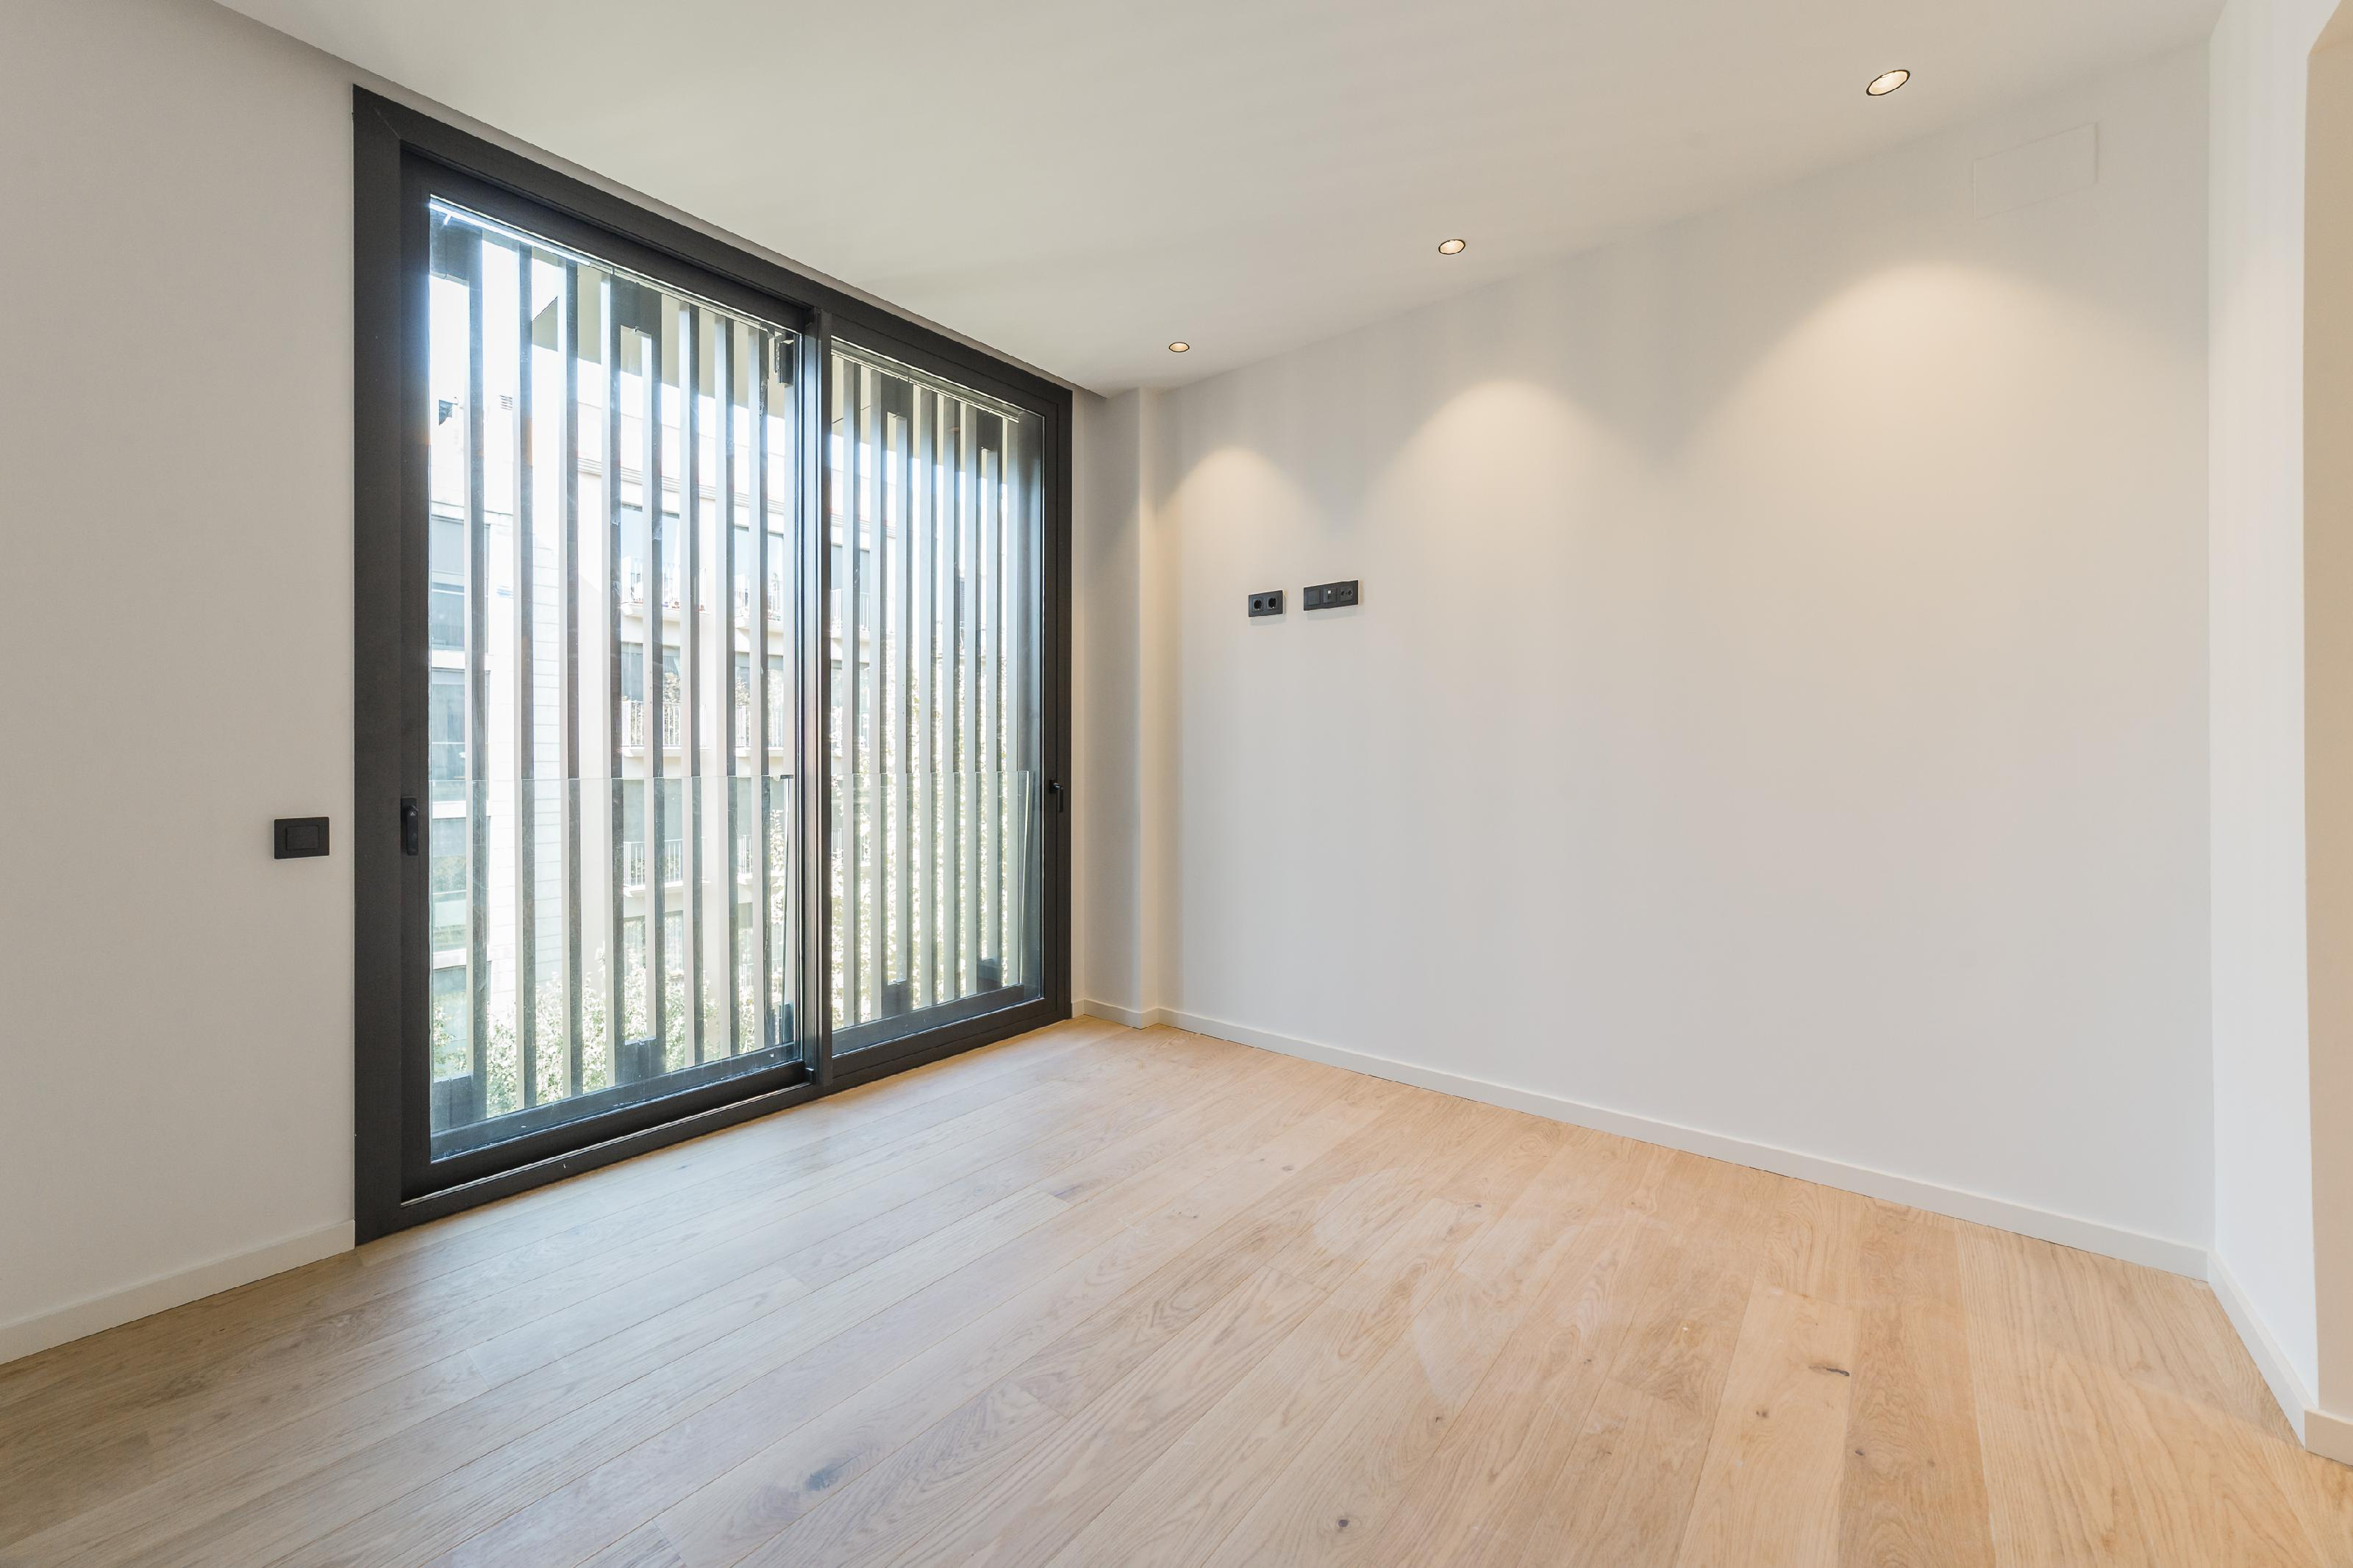 182474 Apartment for sale in Eixample, Old Left Eixample 15